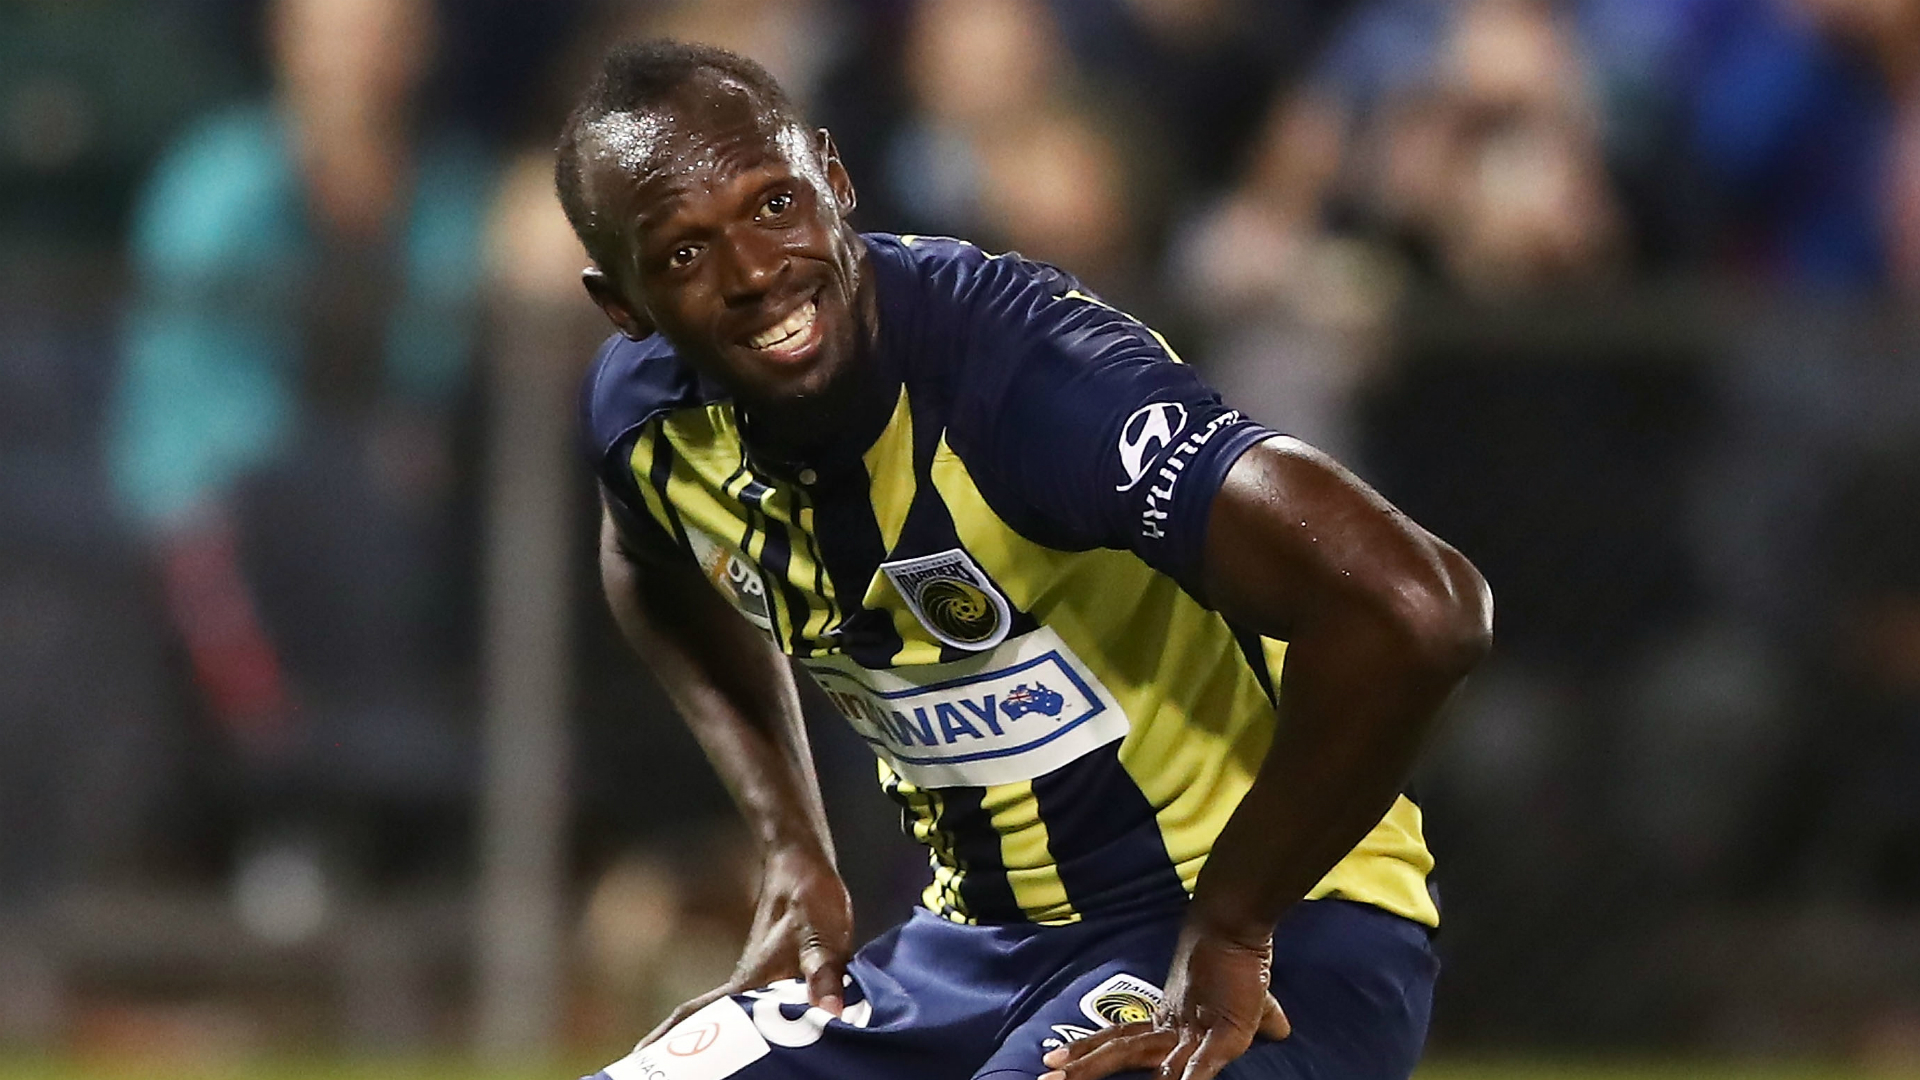 Bolt hits out on Instagram over drug test order